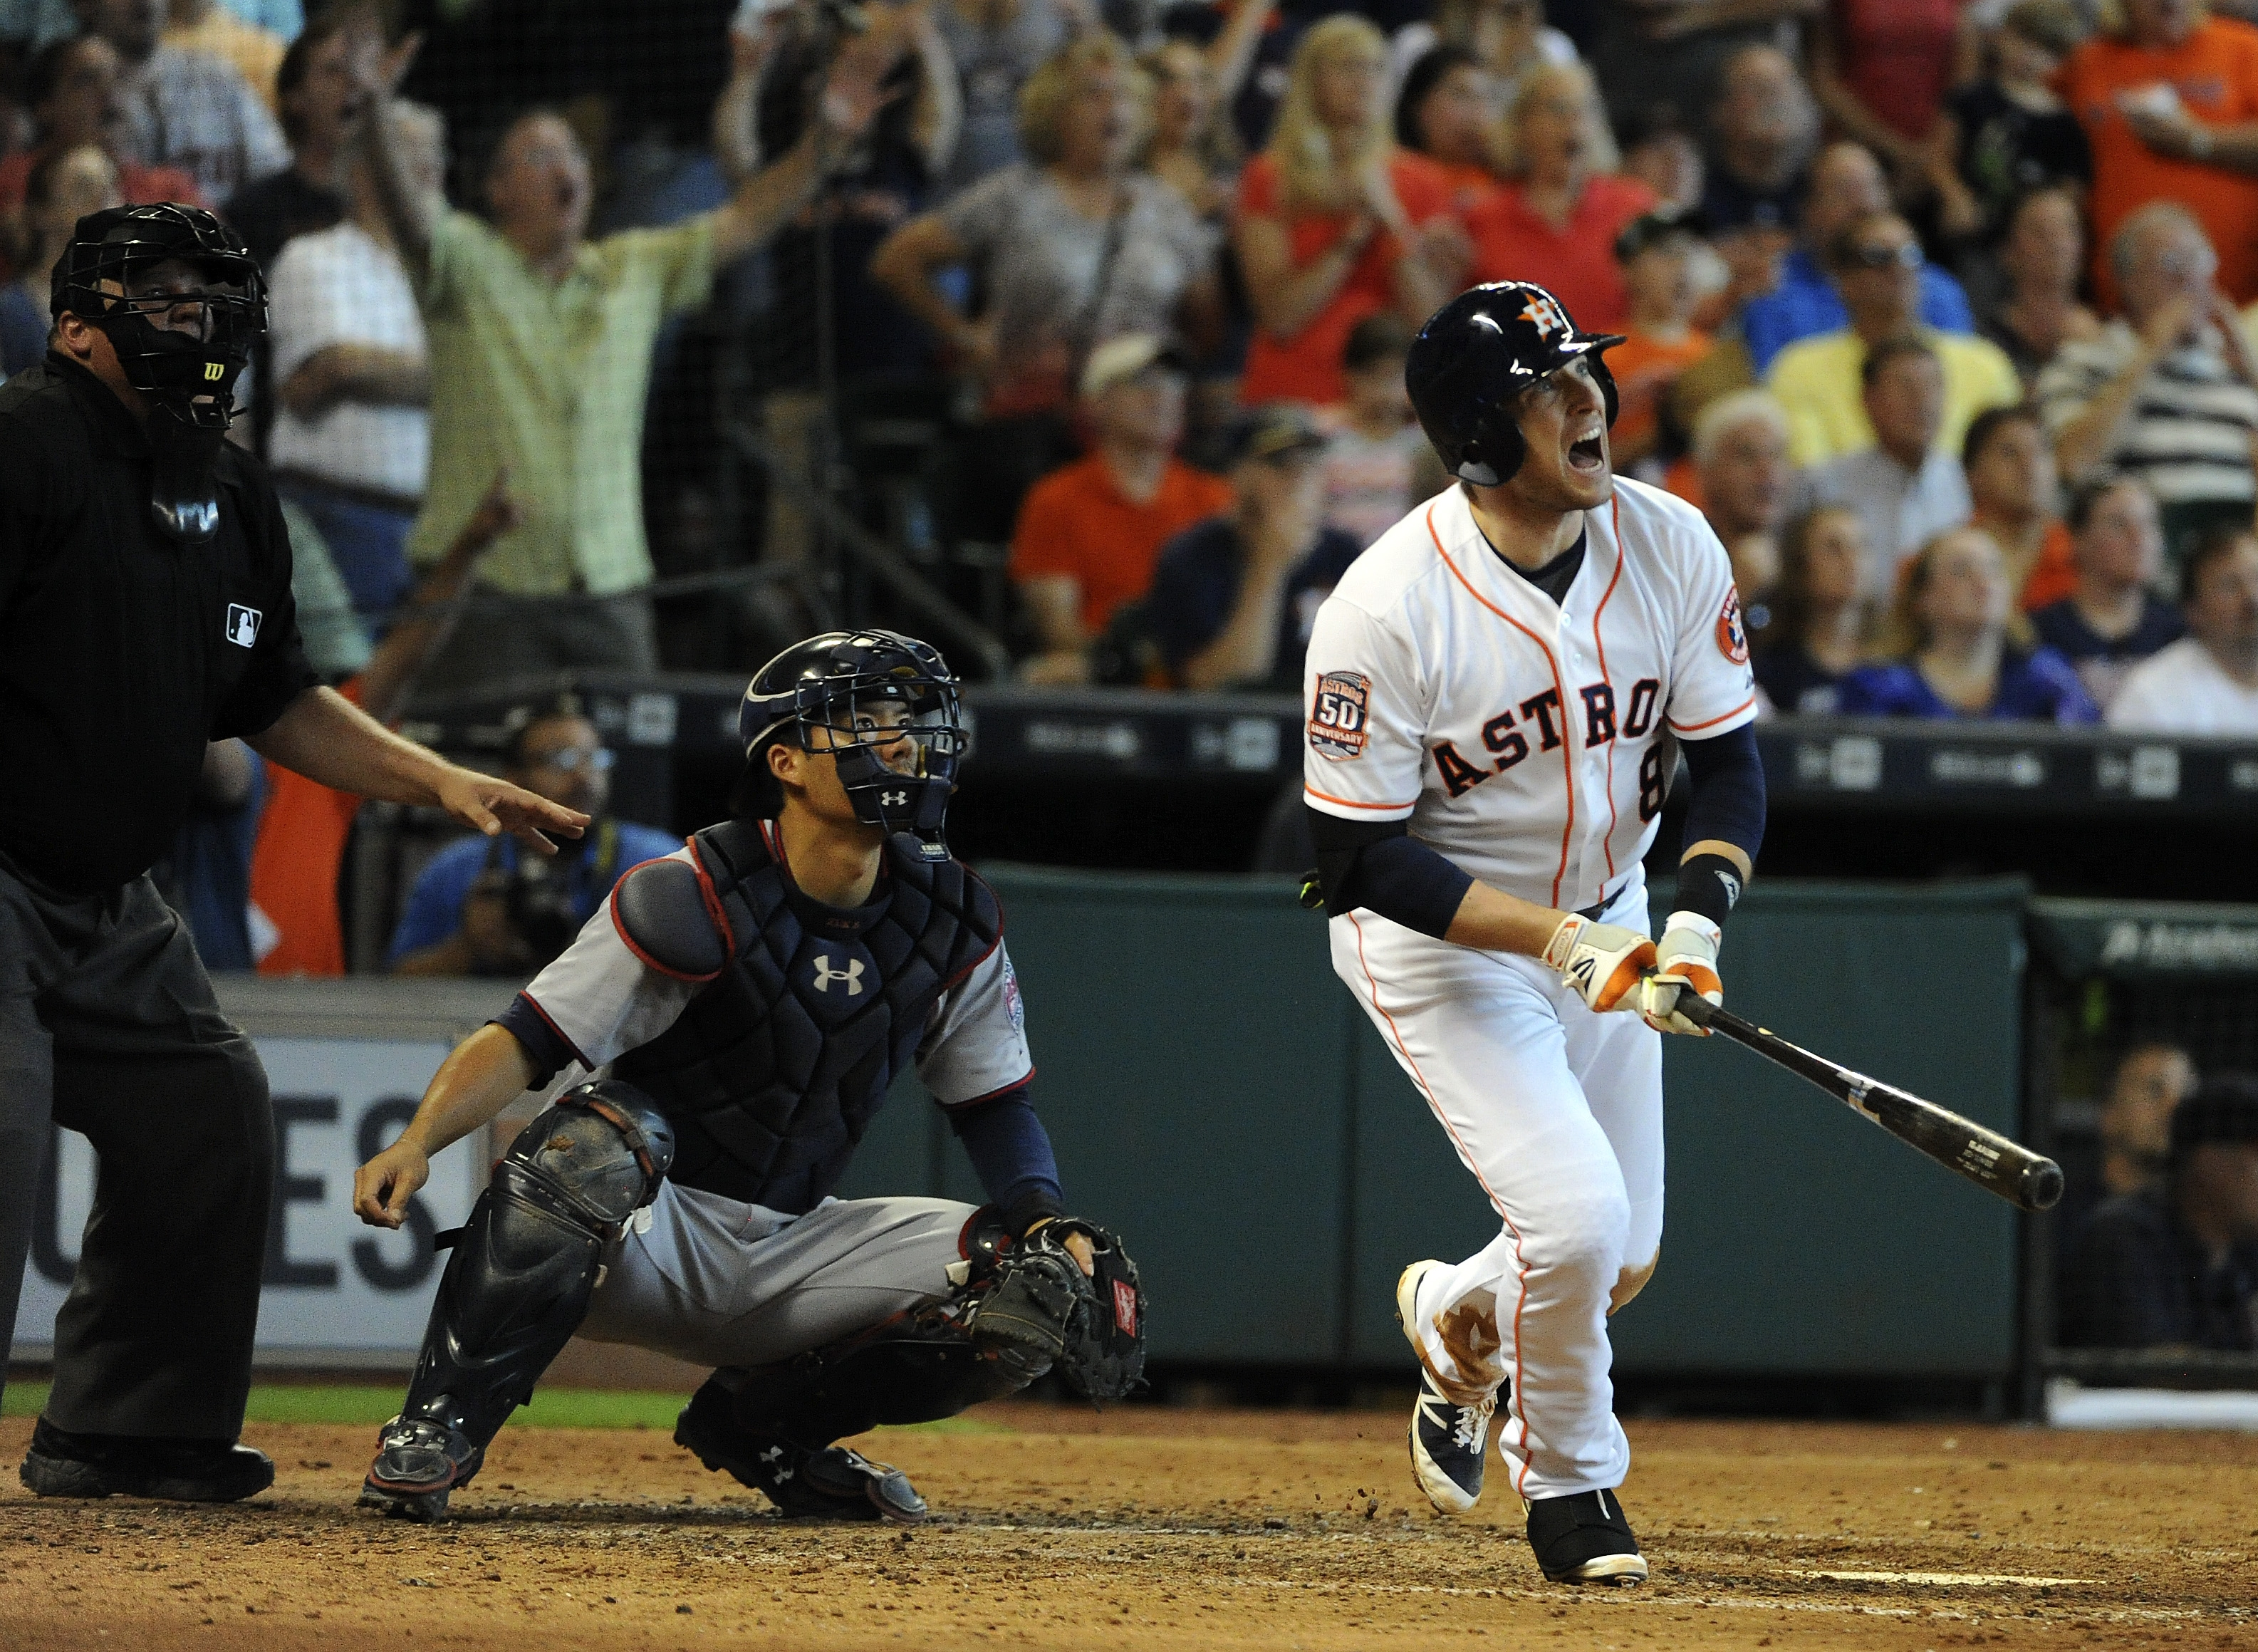 Houston Astros' Jed Lowrie (8) watches his grand slam in the seventh inning of a baseball game against the Minnesota Twins, Sunday, Sept. 6, 2015, in Houston. (AP Photo/Eric Christian Smith)